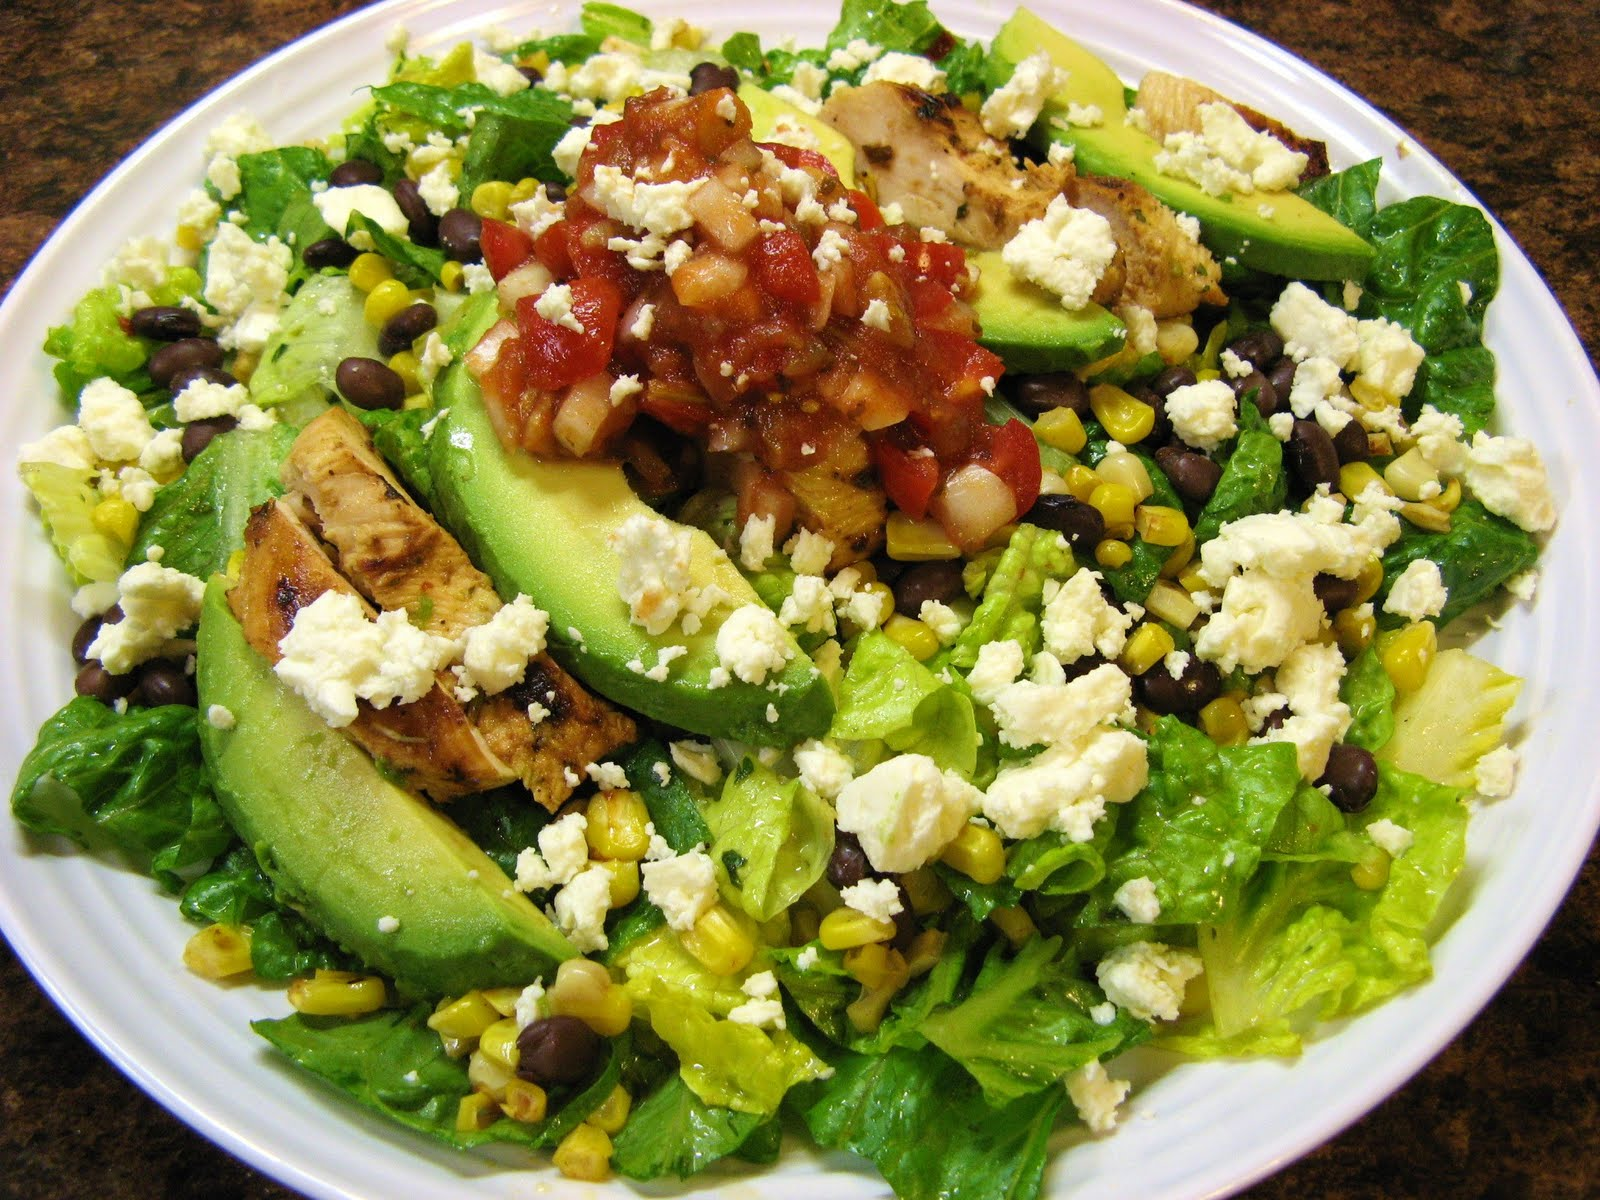 The Well-Fed Newlyweds: Grilled Chicken Salad with Chipotle Lime ...